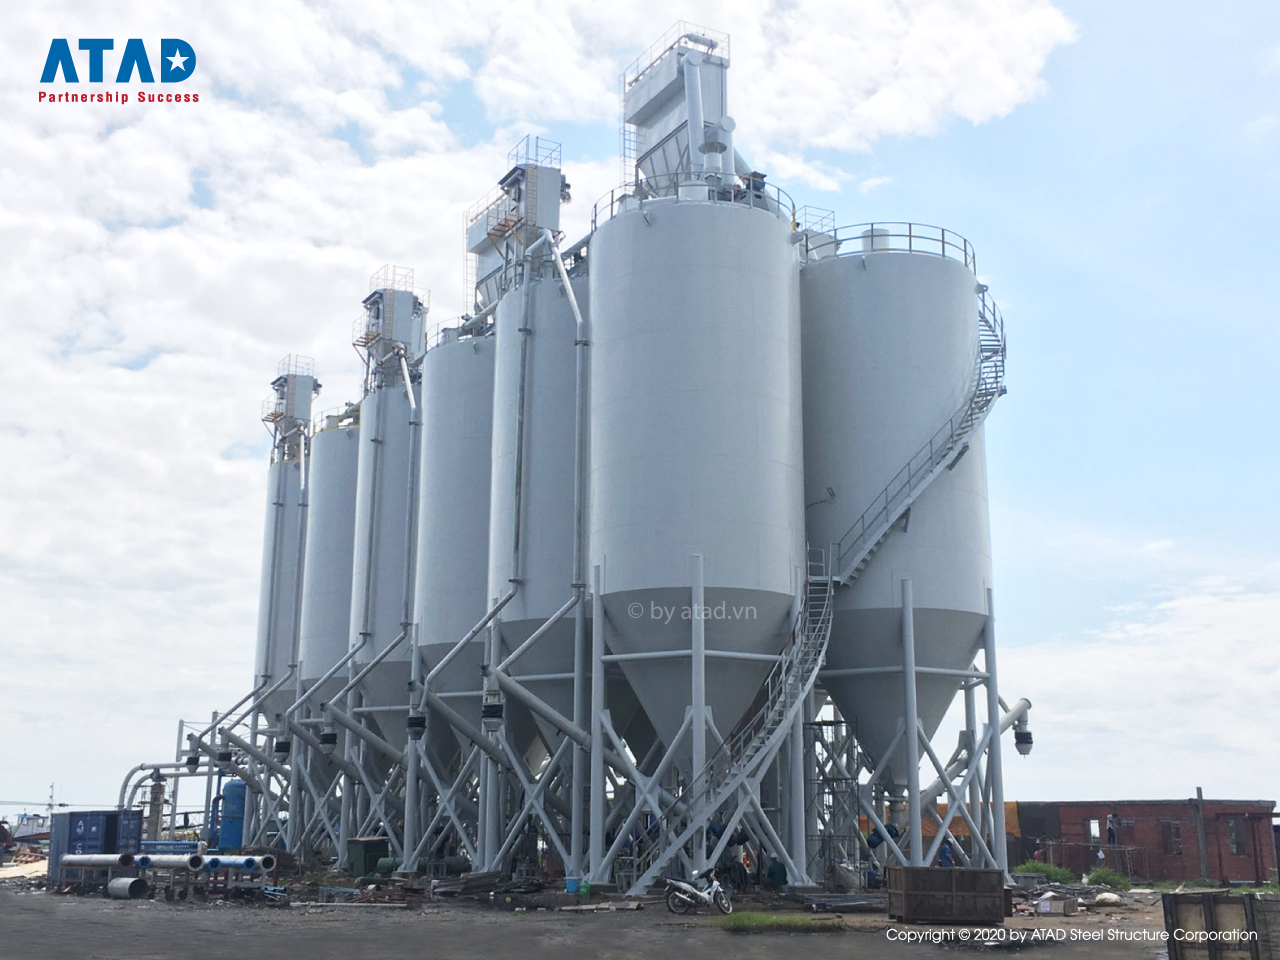 ATAD implemented silo structure of Hoa Phat's S95 general systems